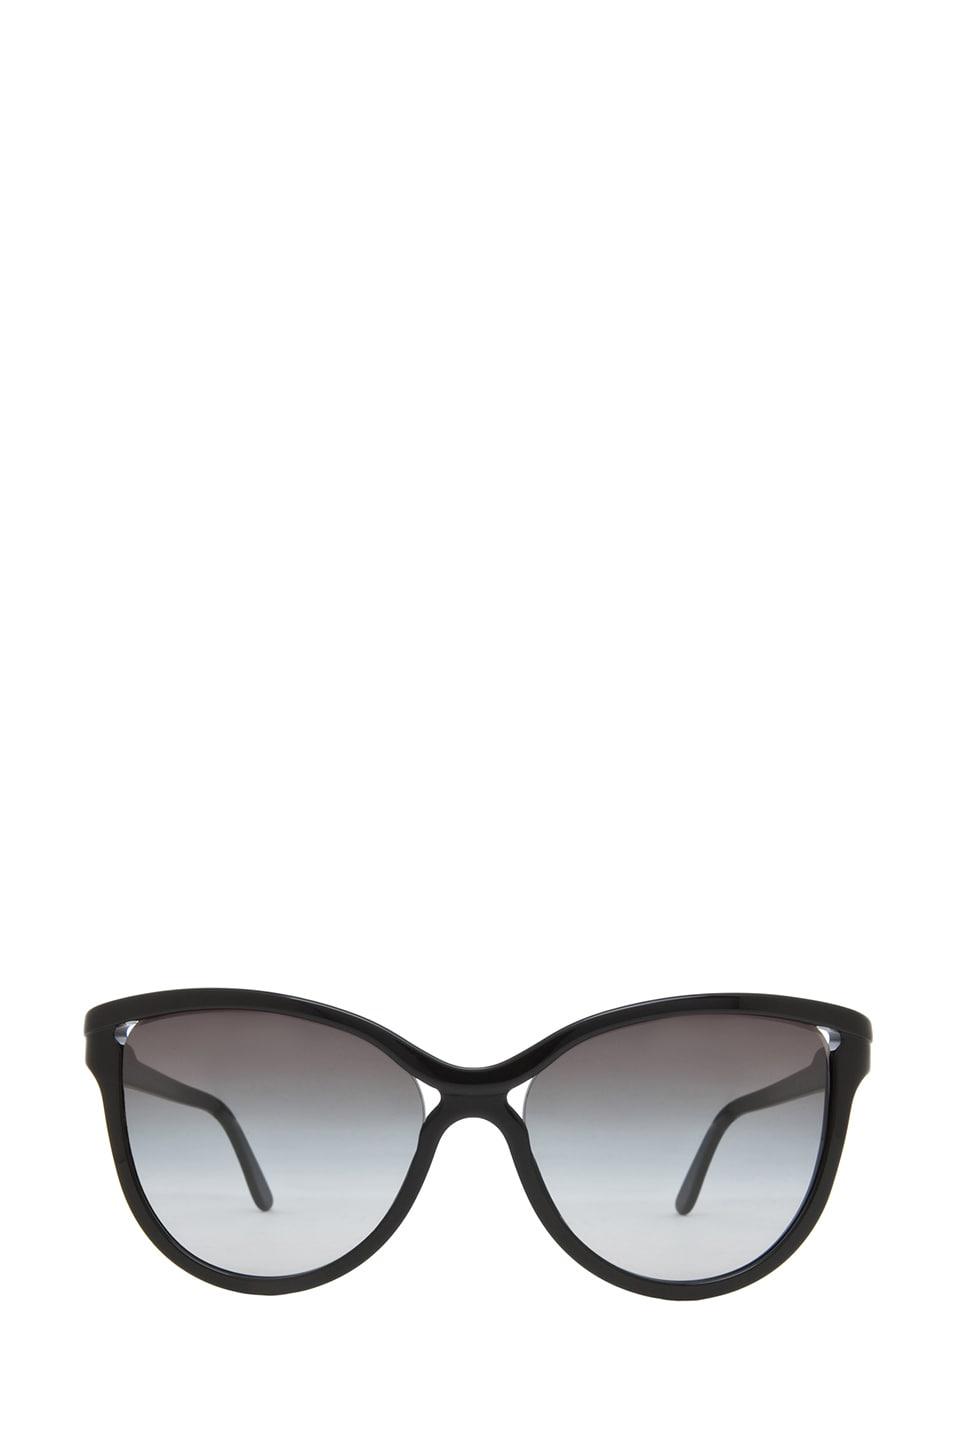 Image 1 of Stella McCartney Rounded Cat Eye Sunglasses in Black & Grey Gradient